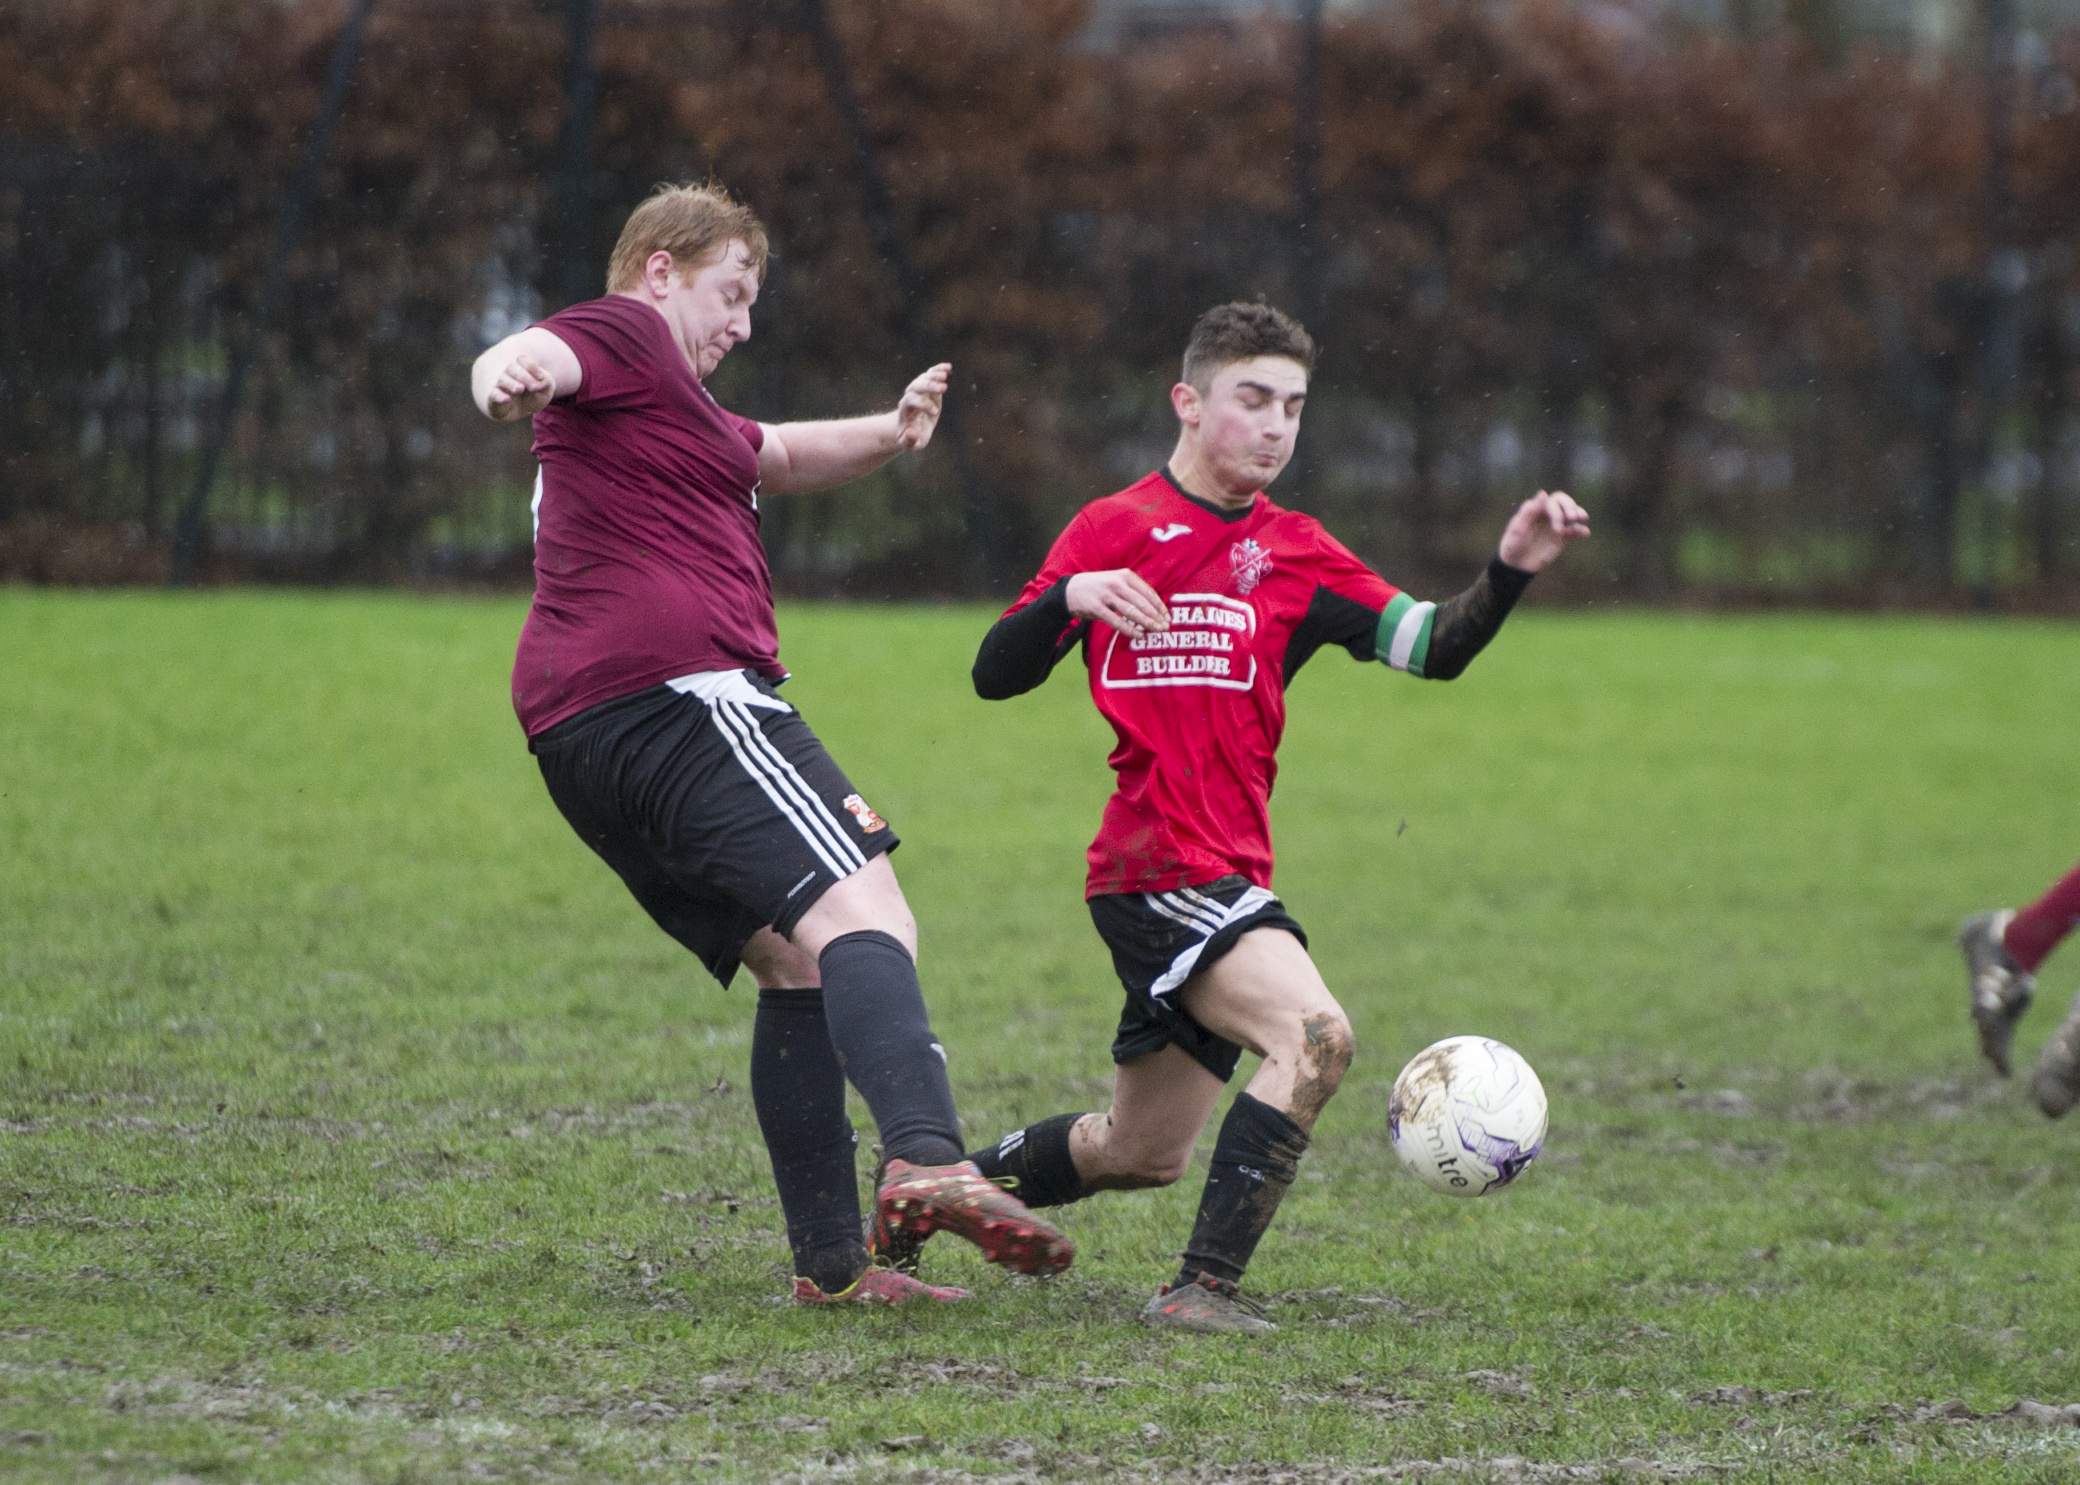 Swindon AFC's Regan Cass (left) is challenged by Liam Wilkinson, of Highworth Town Development in their Swindon & District Division One clash on Saturday